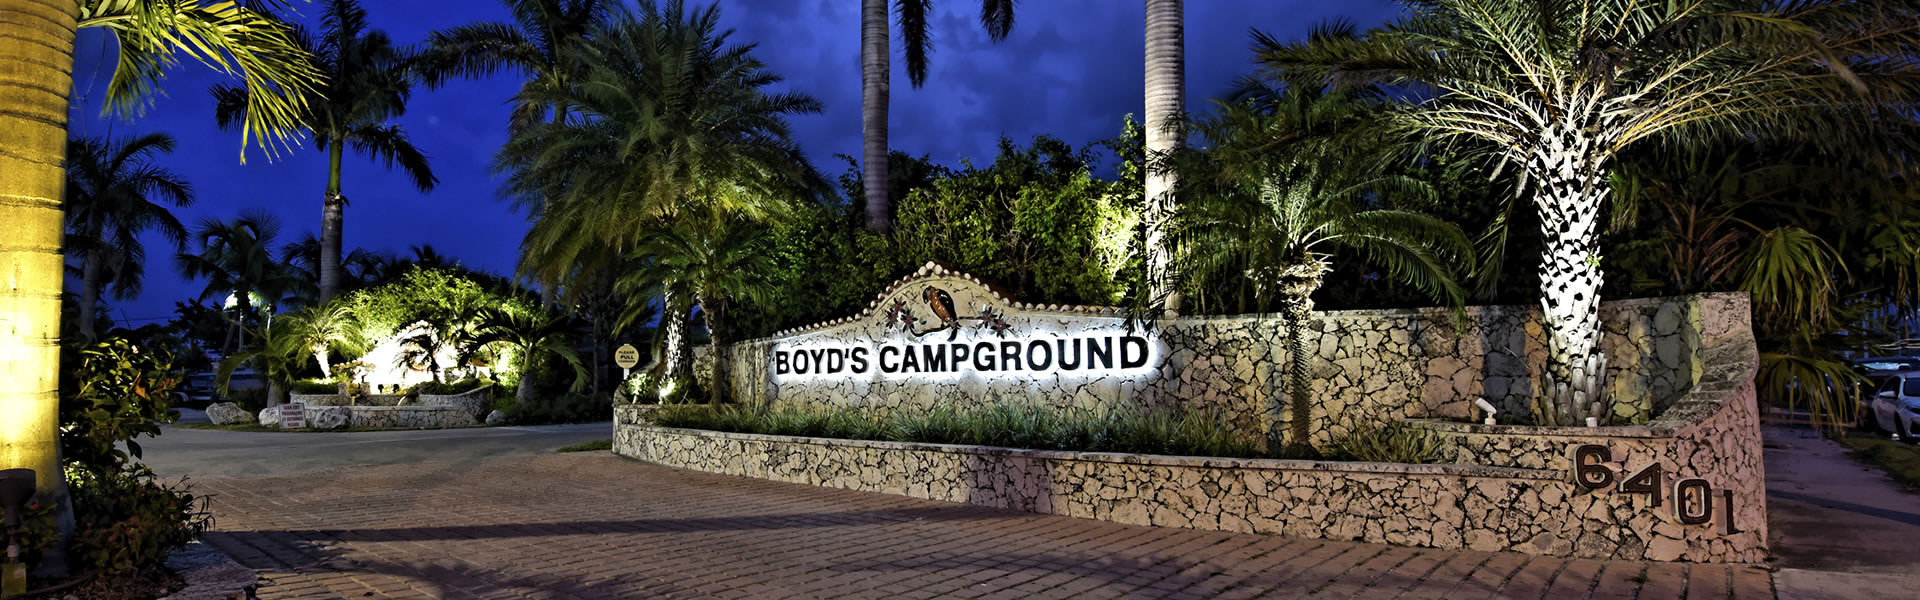 Boyd's Key West RV Campground - Waterfront RV & Tent Camping